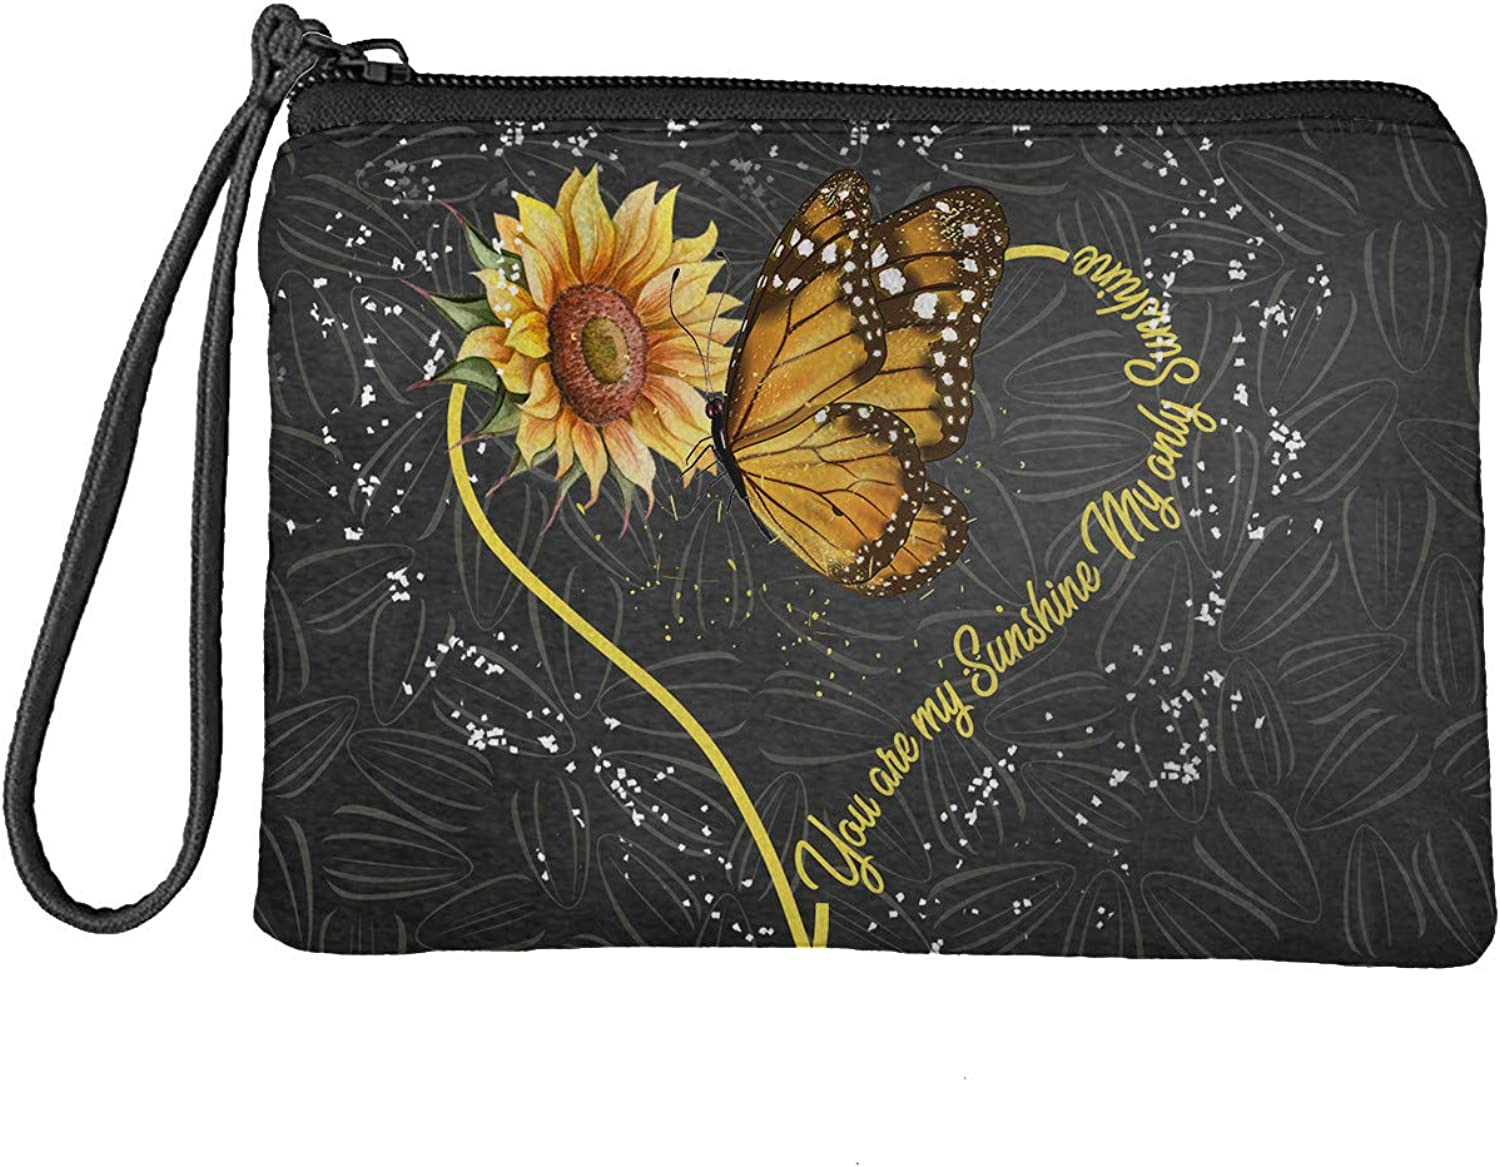 Belidome Small Canvas Wallet Purse Girls Women for Soft Durable San Diego Max 52% OFF Mall